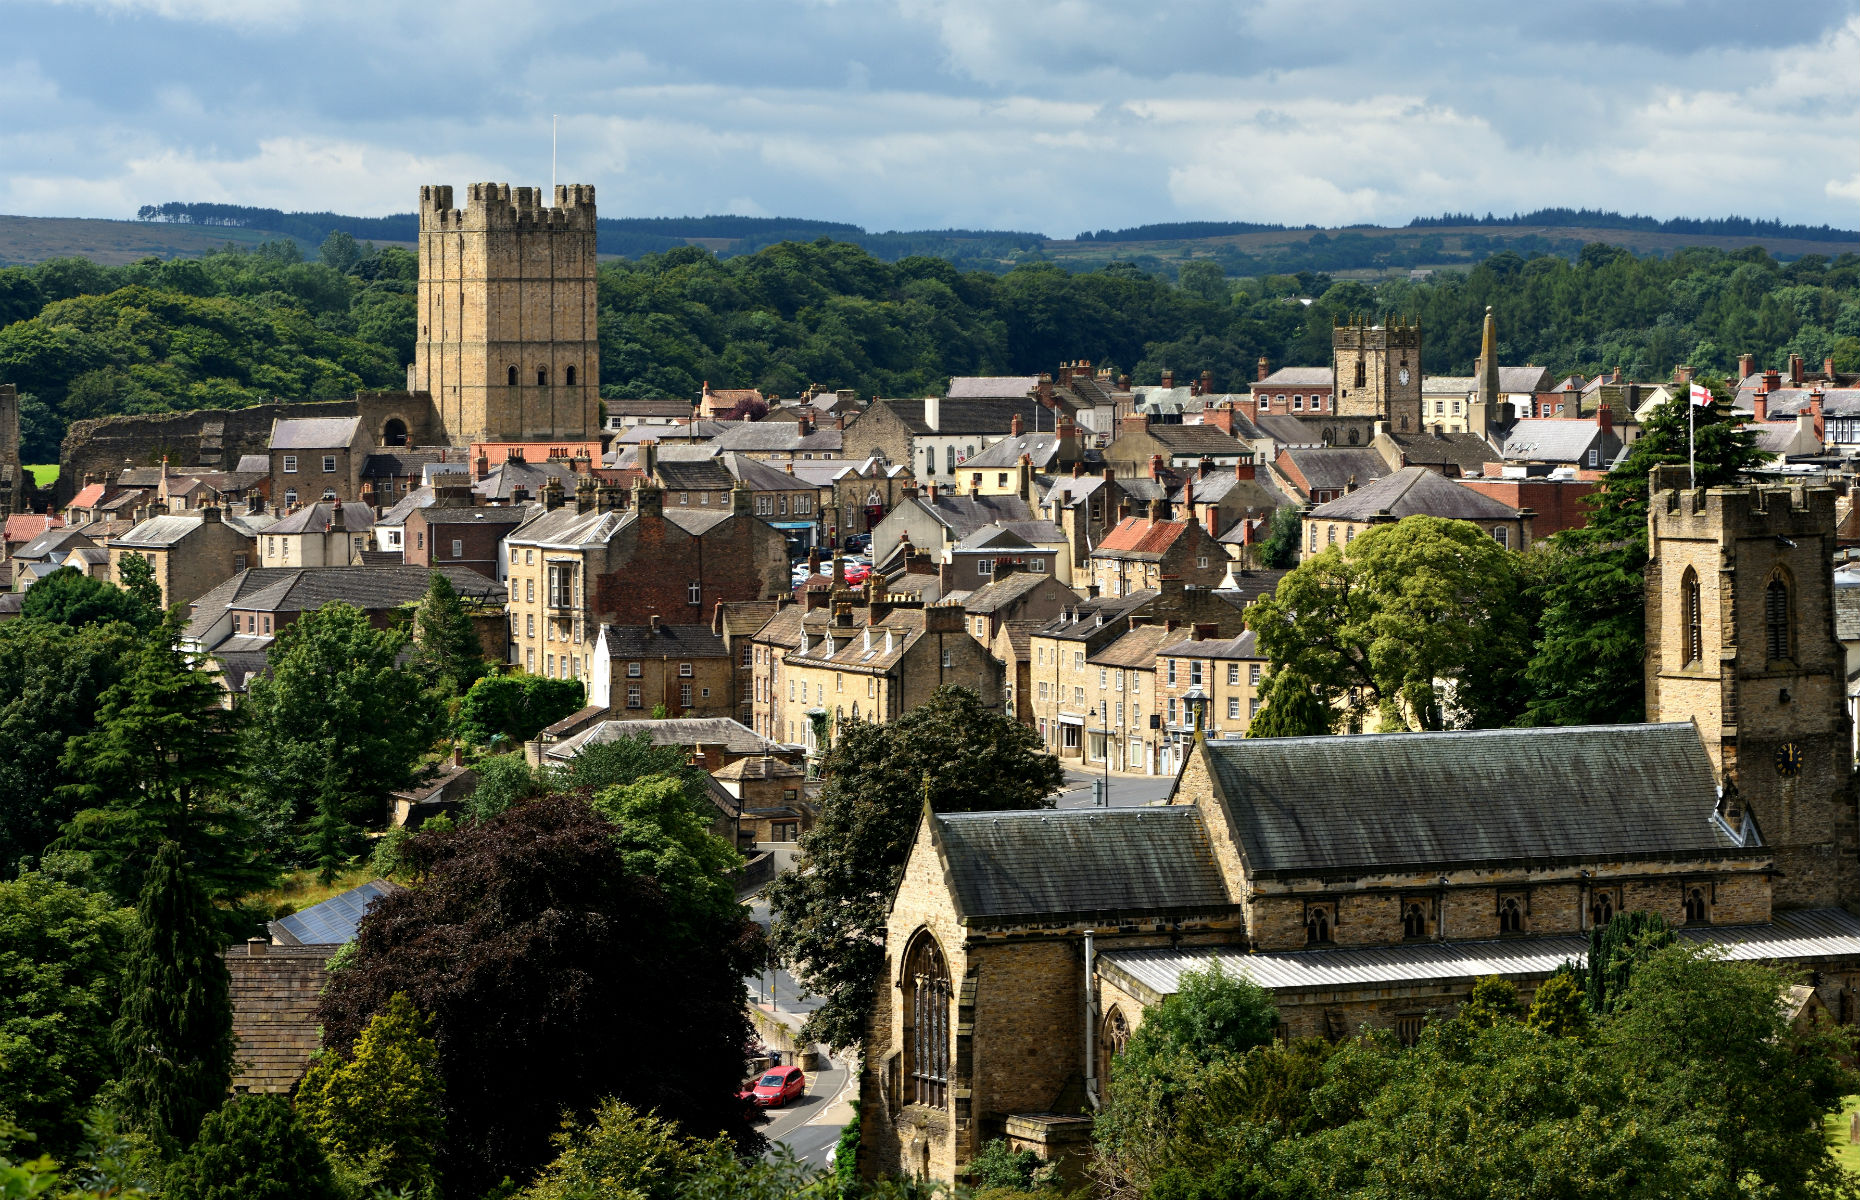 Richmond (image: Mike Russell/Shutterstock)